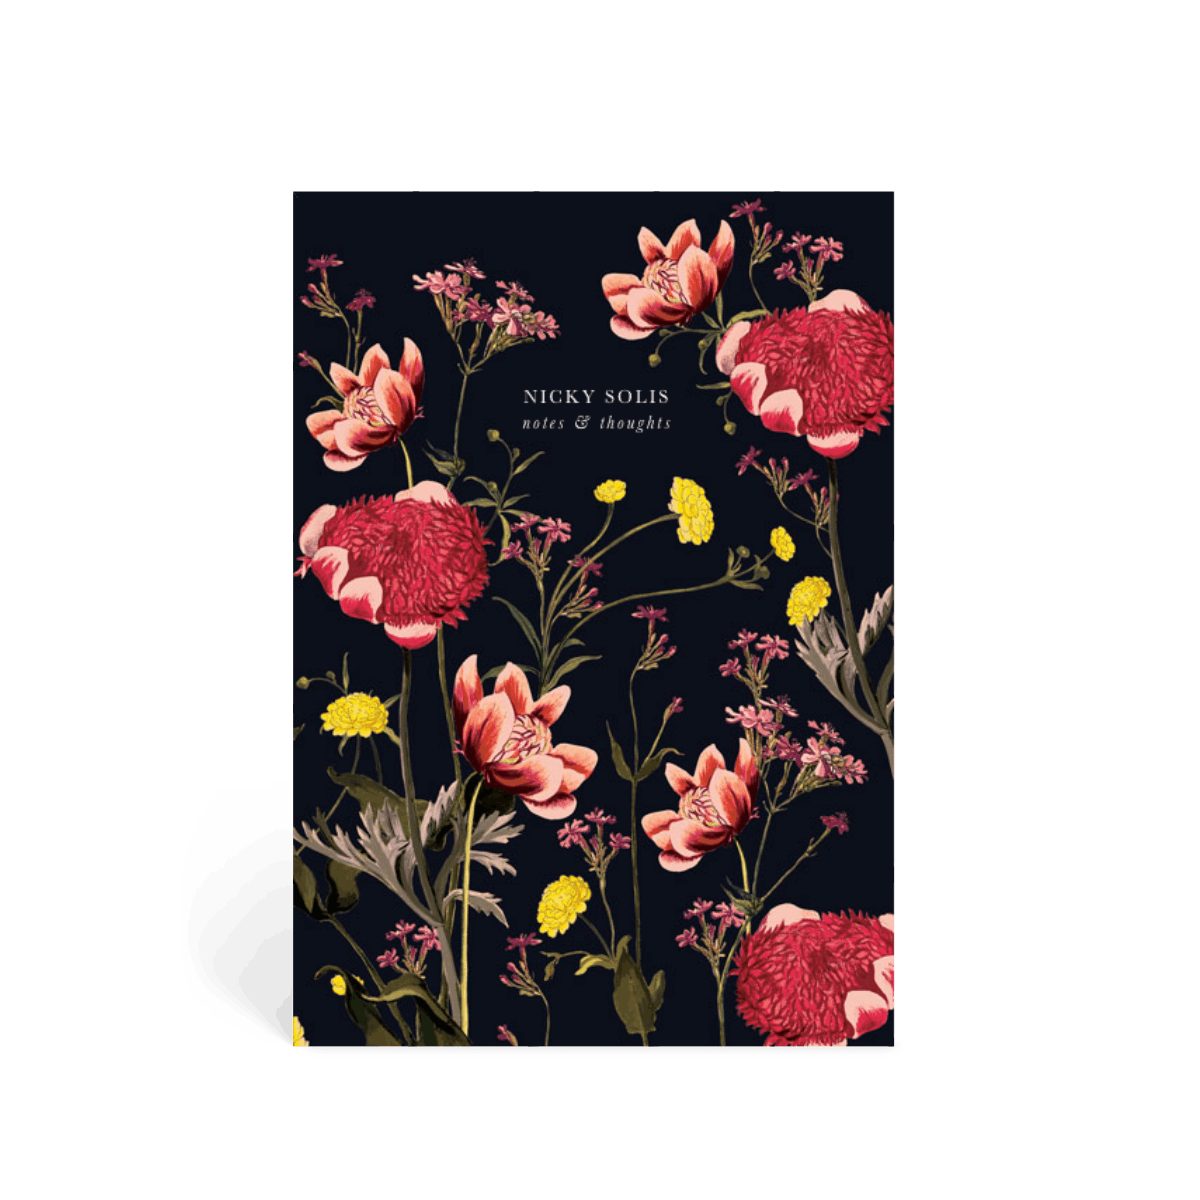 Https%3a%2f%2fwww.papier.com%2fproduct image%2f90425%2f25%2fnavy botanical 22606 front 1570097475.png?ixlib=rb 1.1